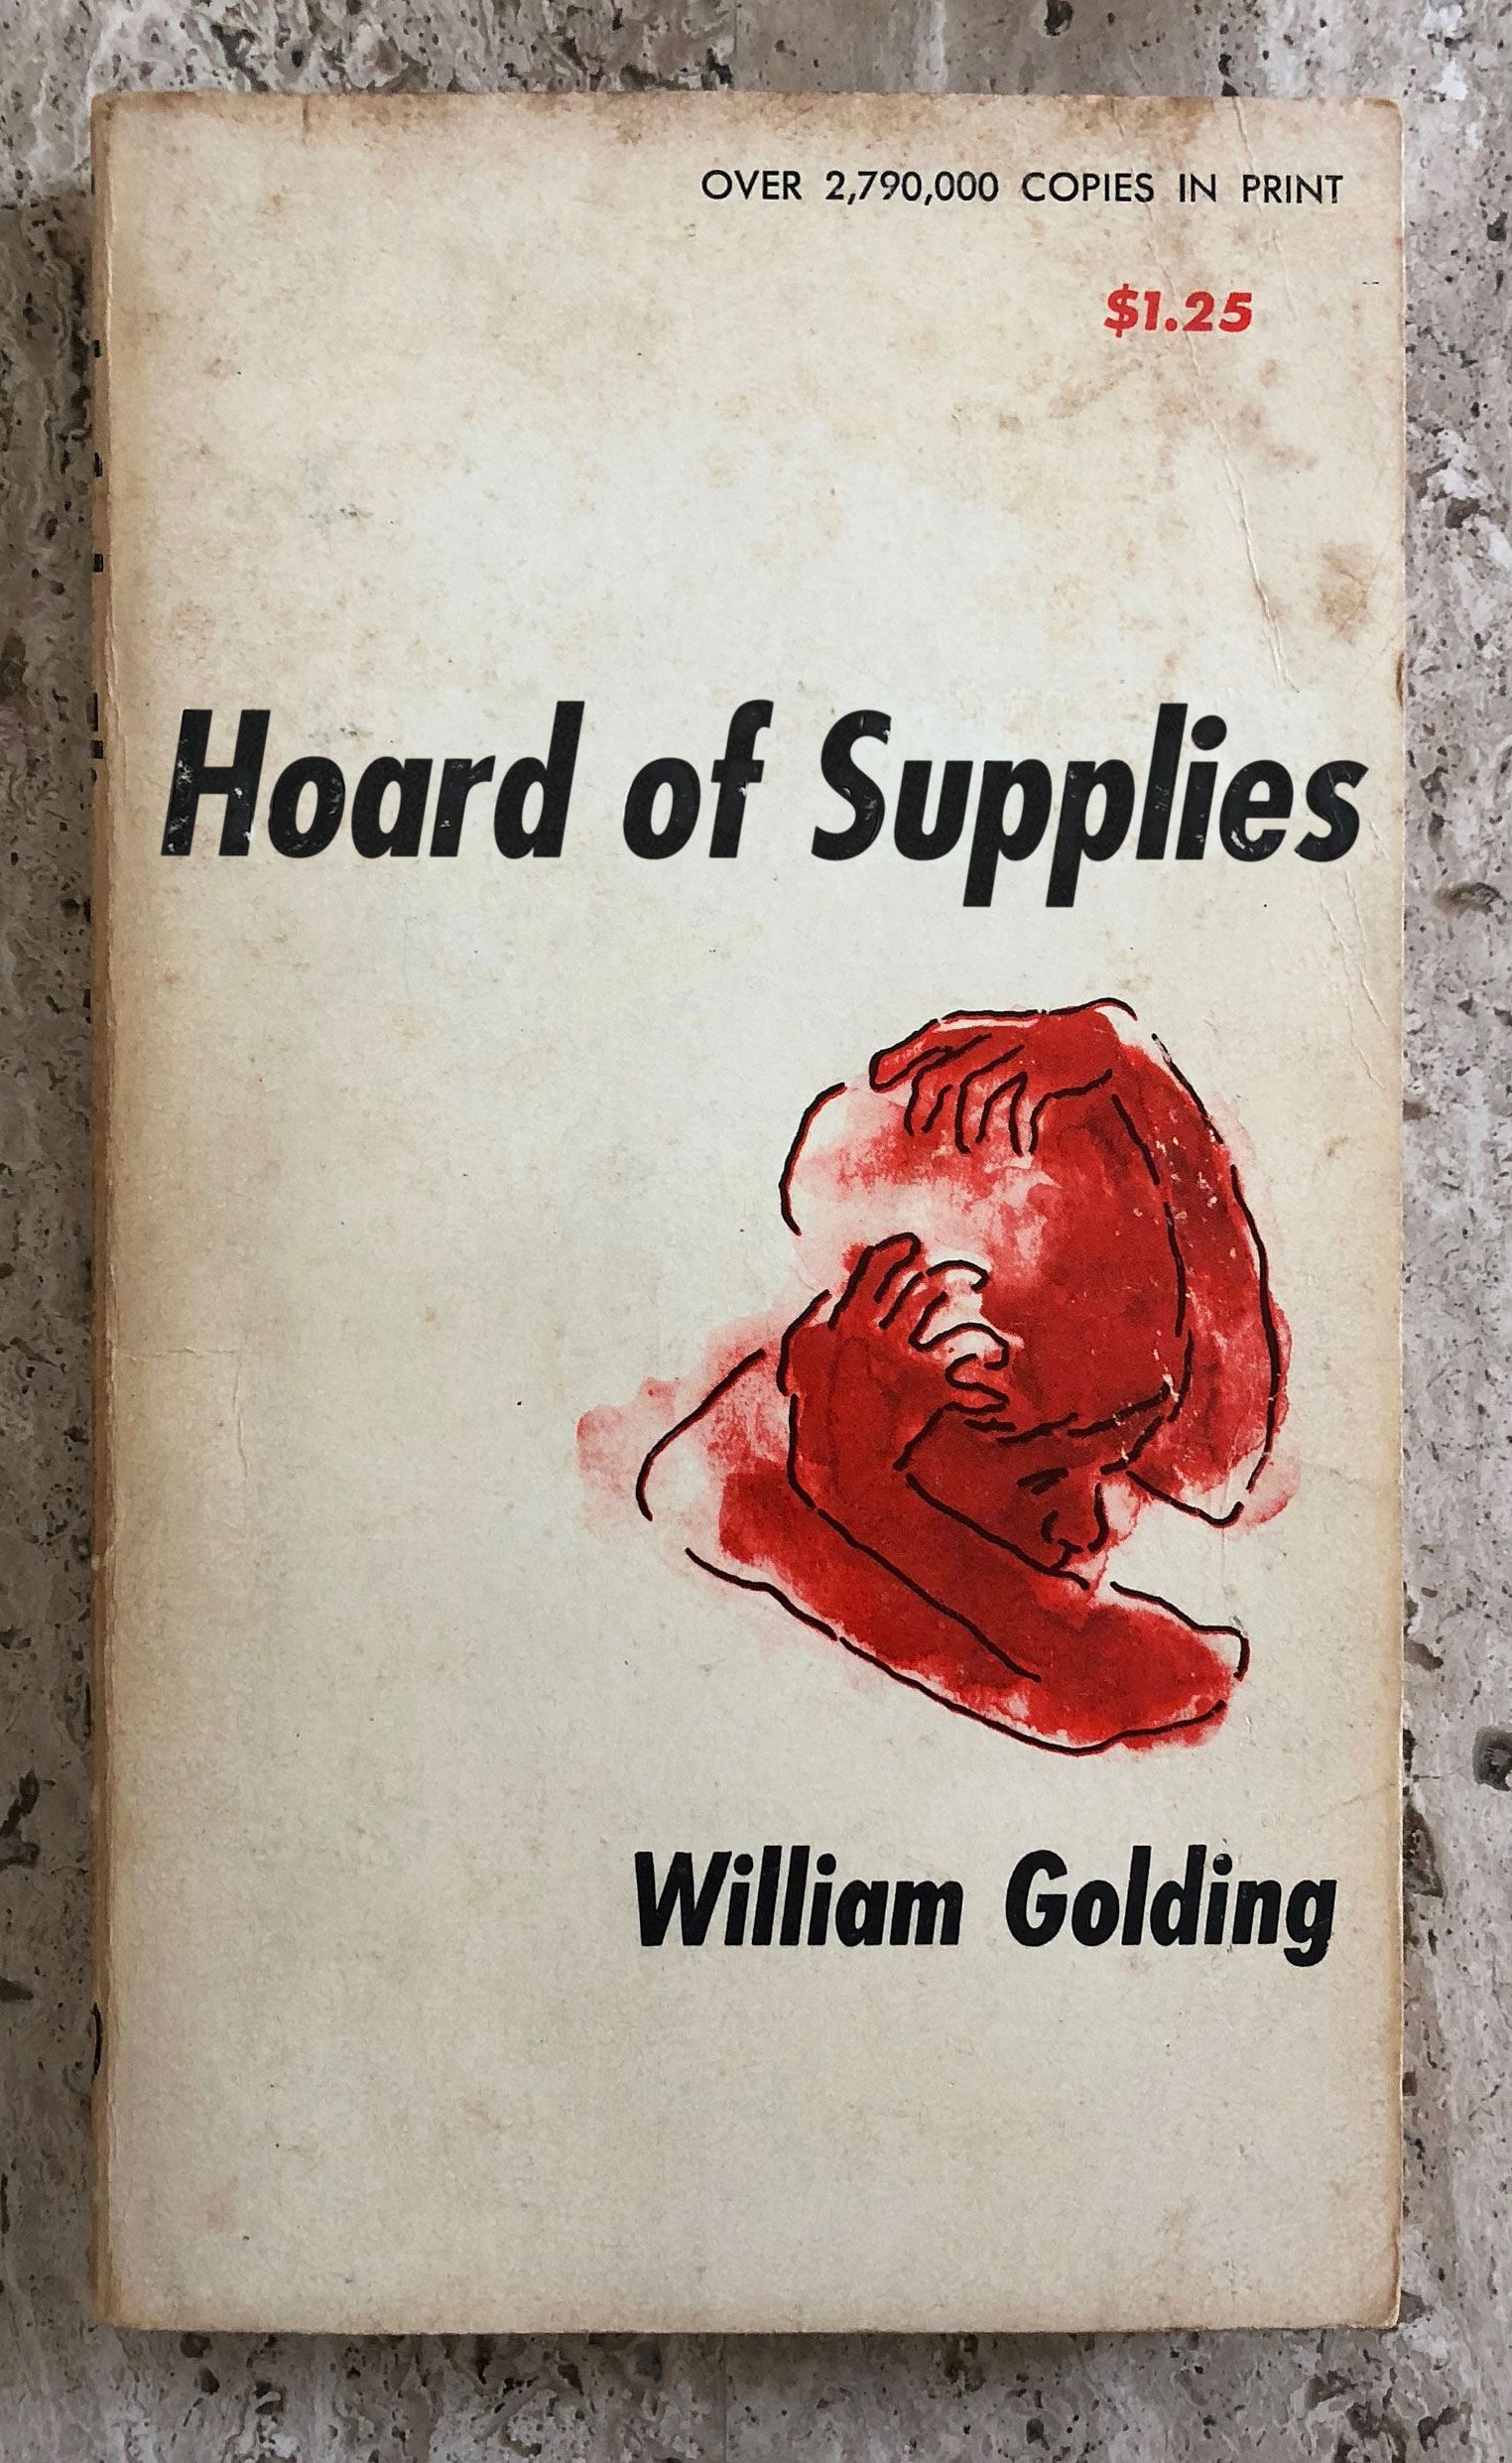 Hoard of Supplies (Lord of the Flies, by William Golding)